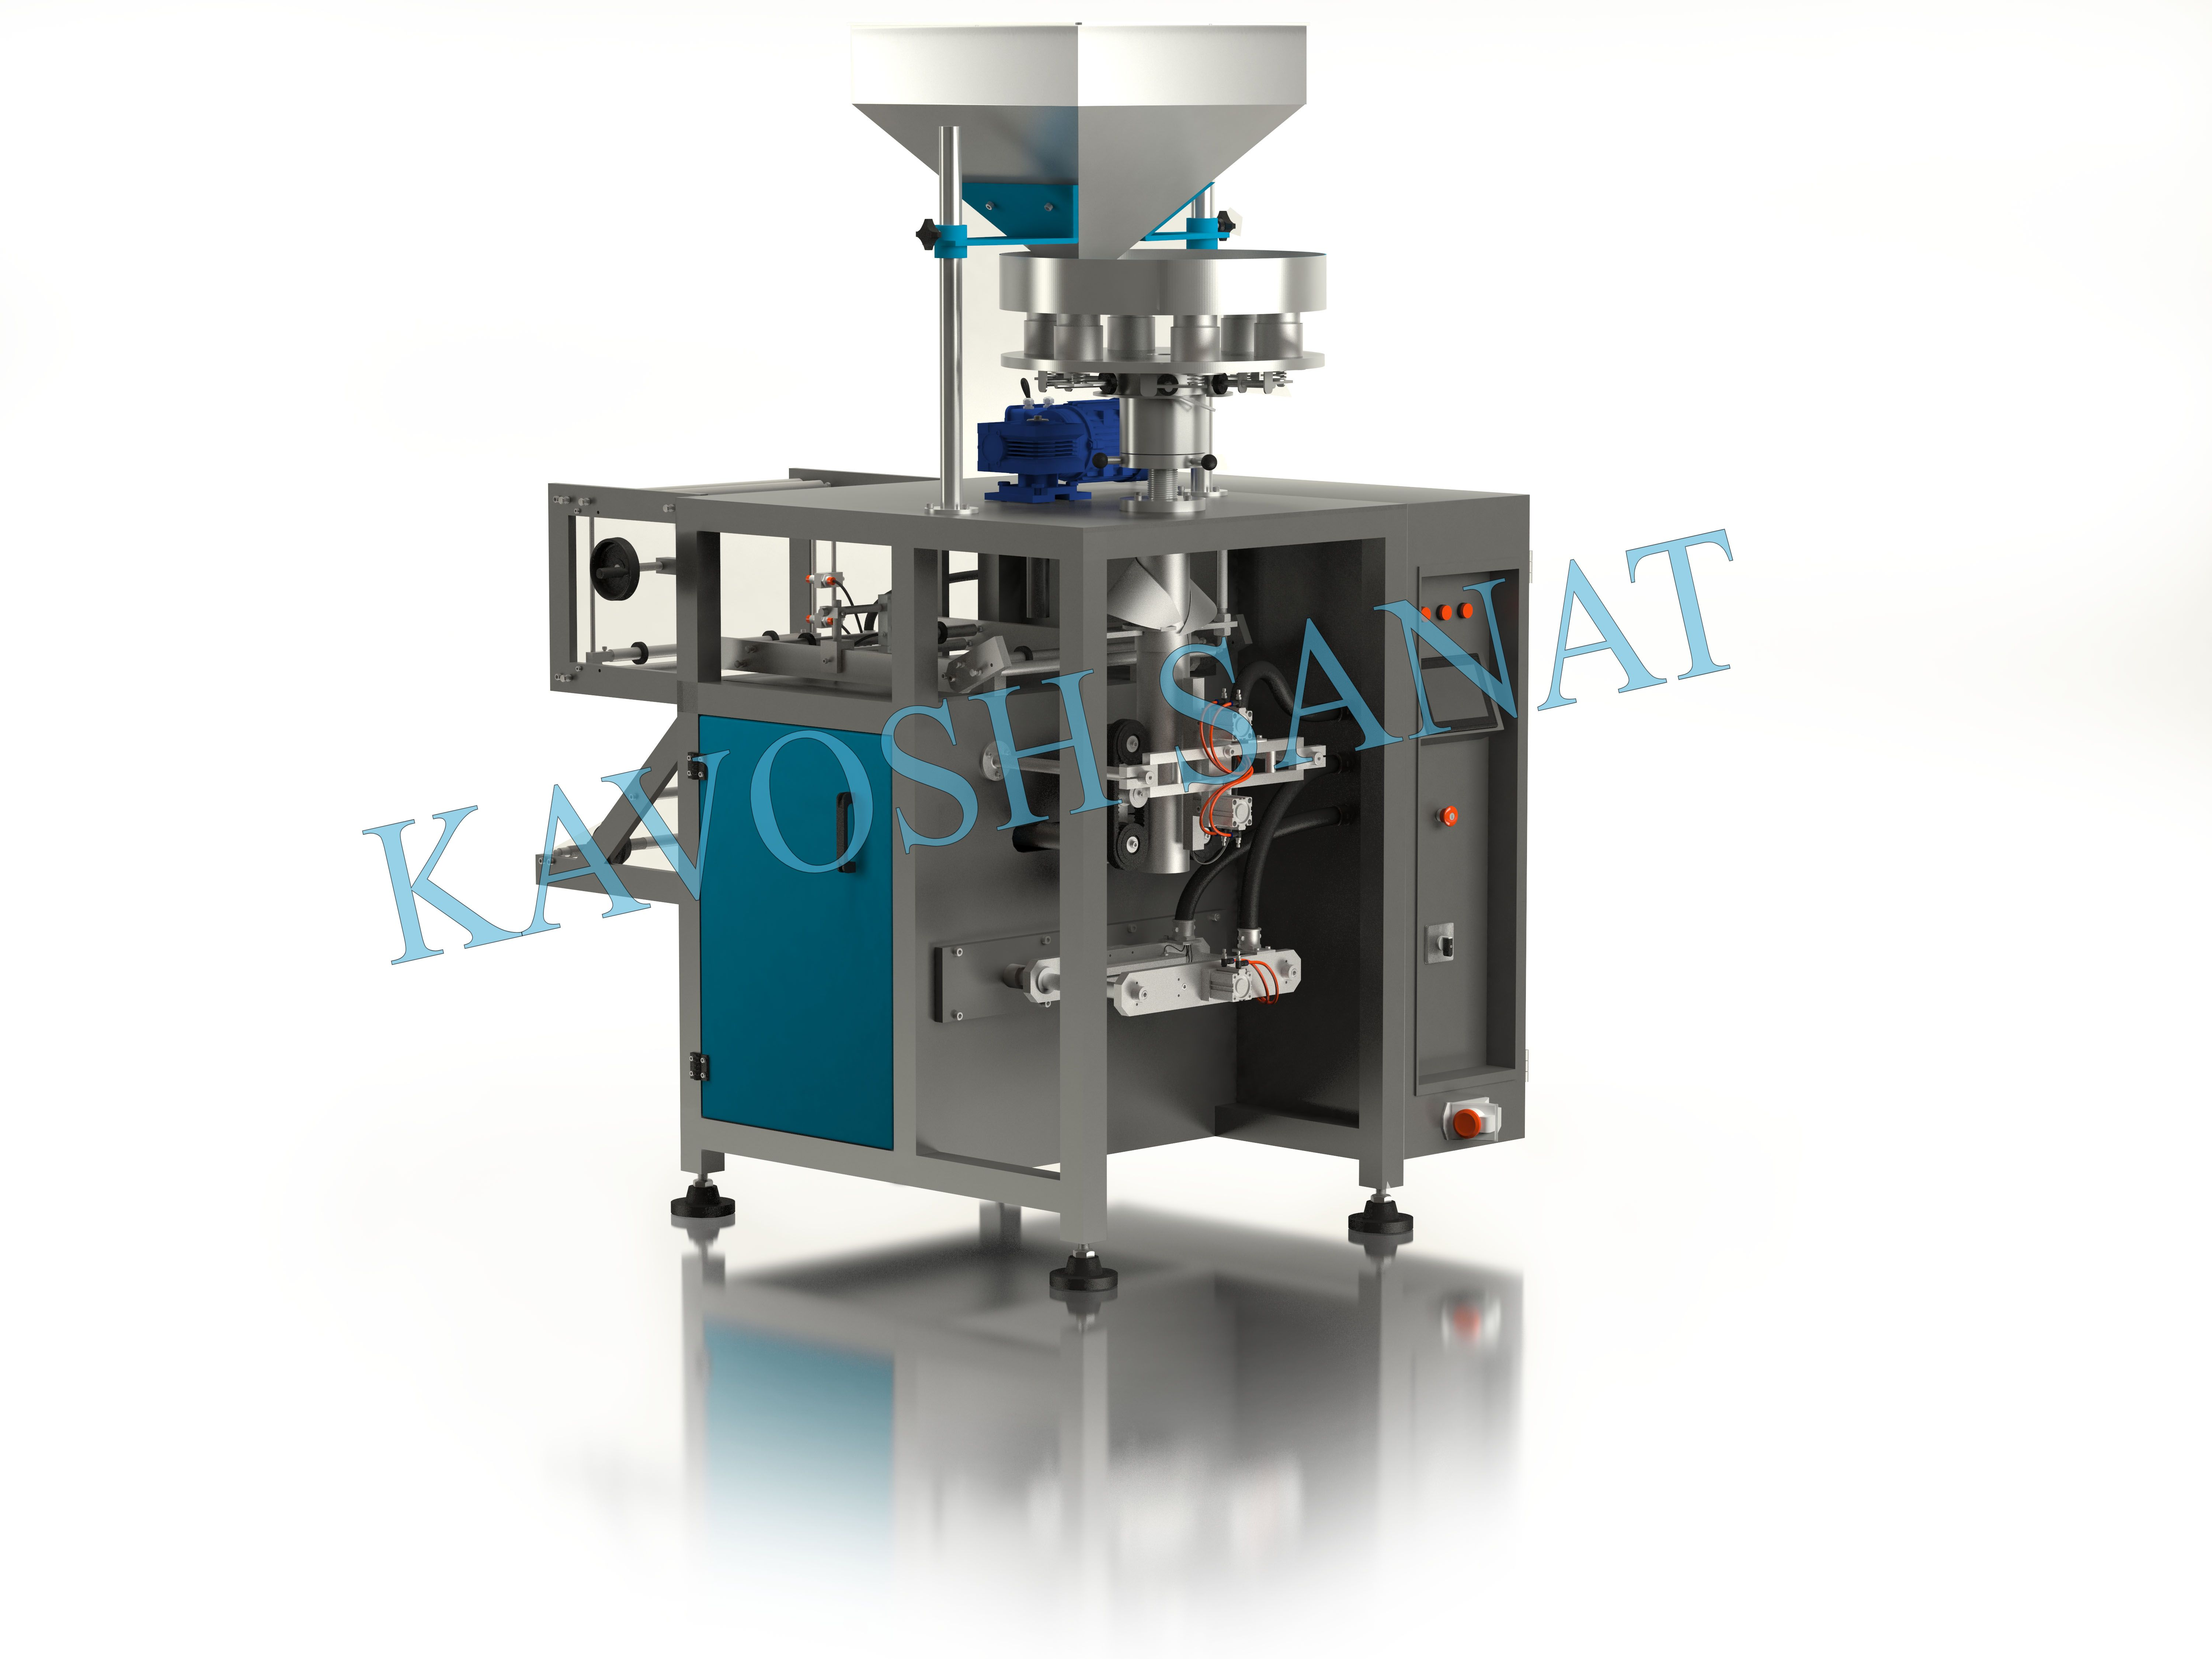 Kavosh Sanat - Volumetric packaging machine